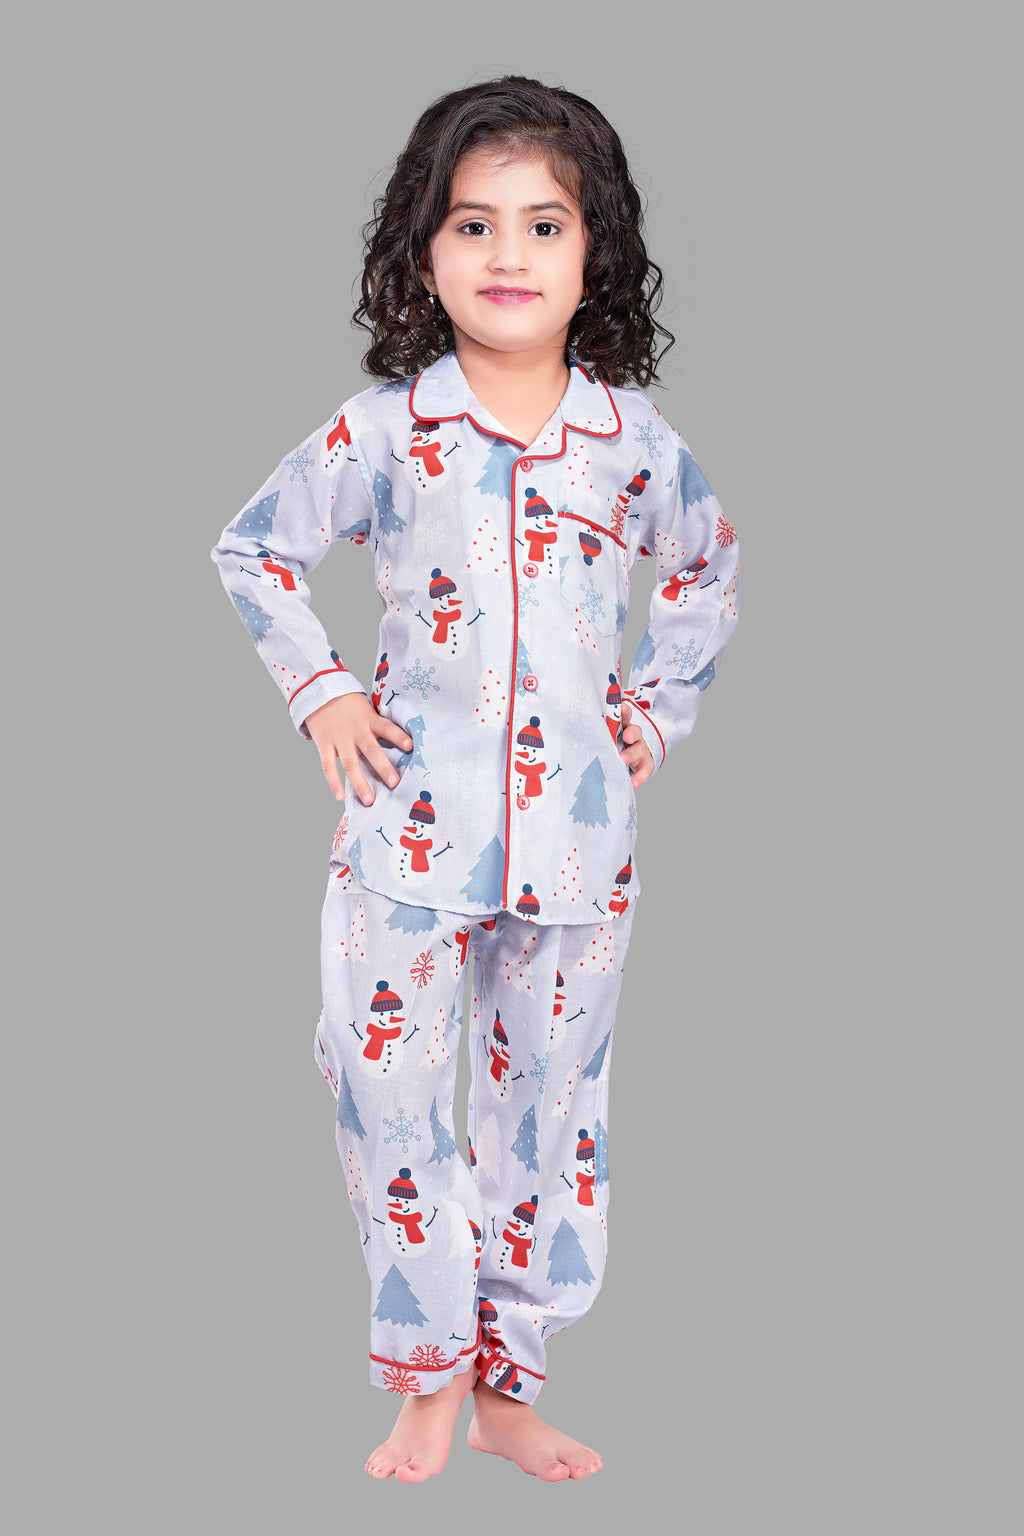 SnowMan FullSleeves Cotton Nightsuit